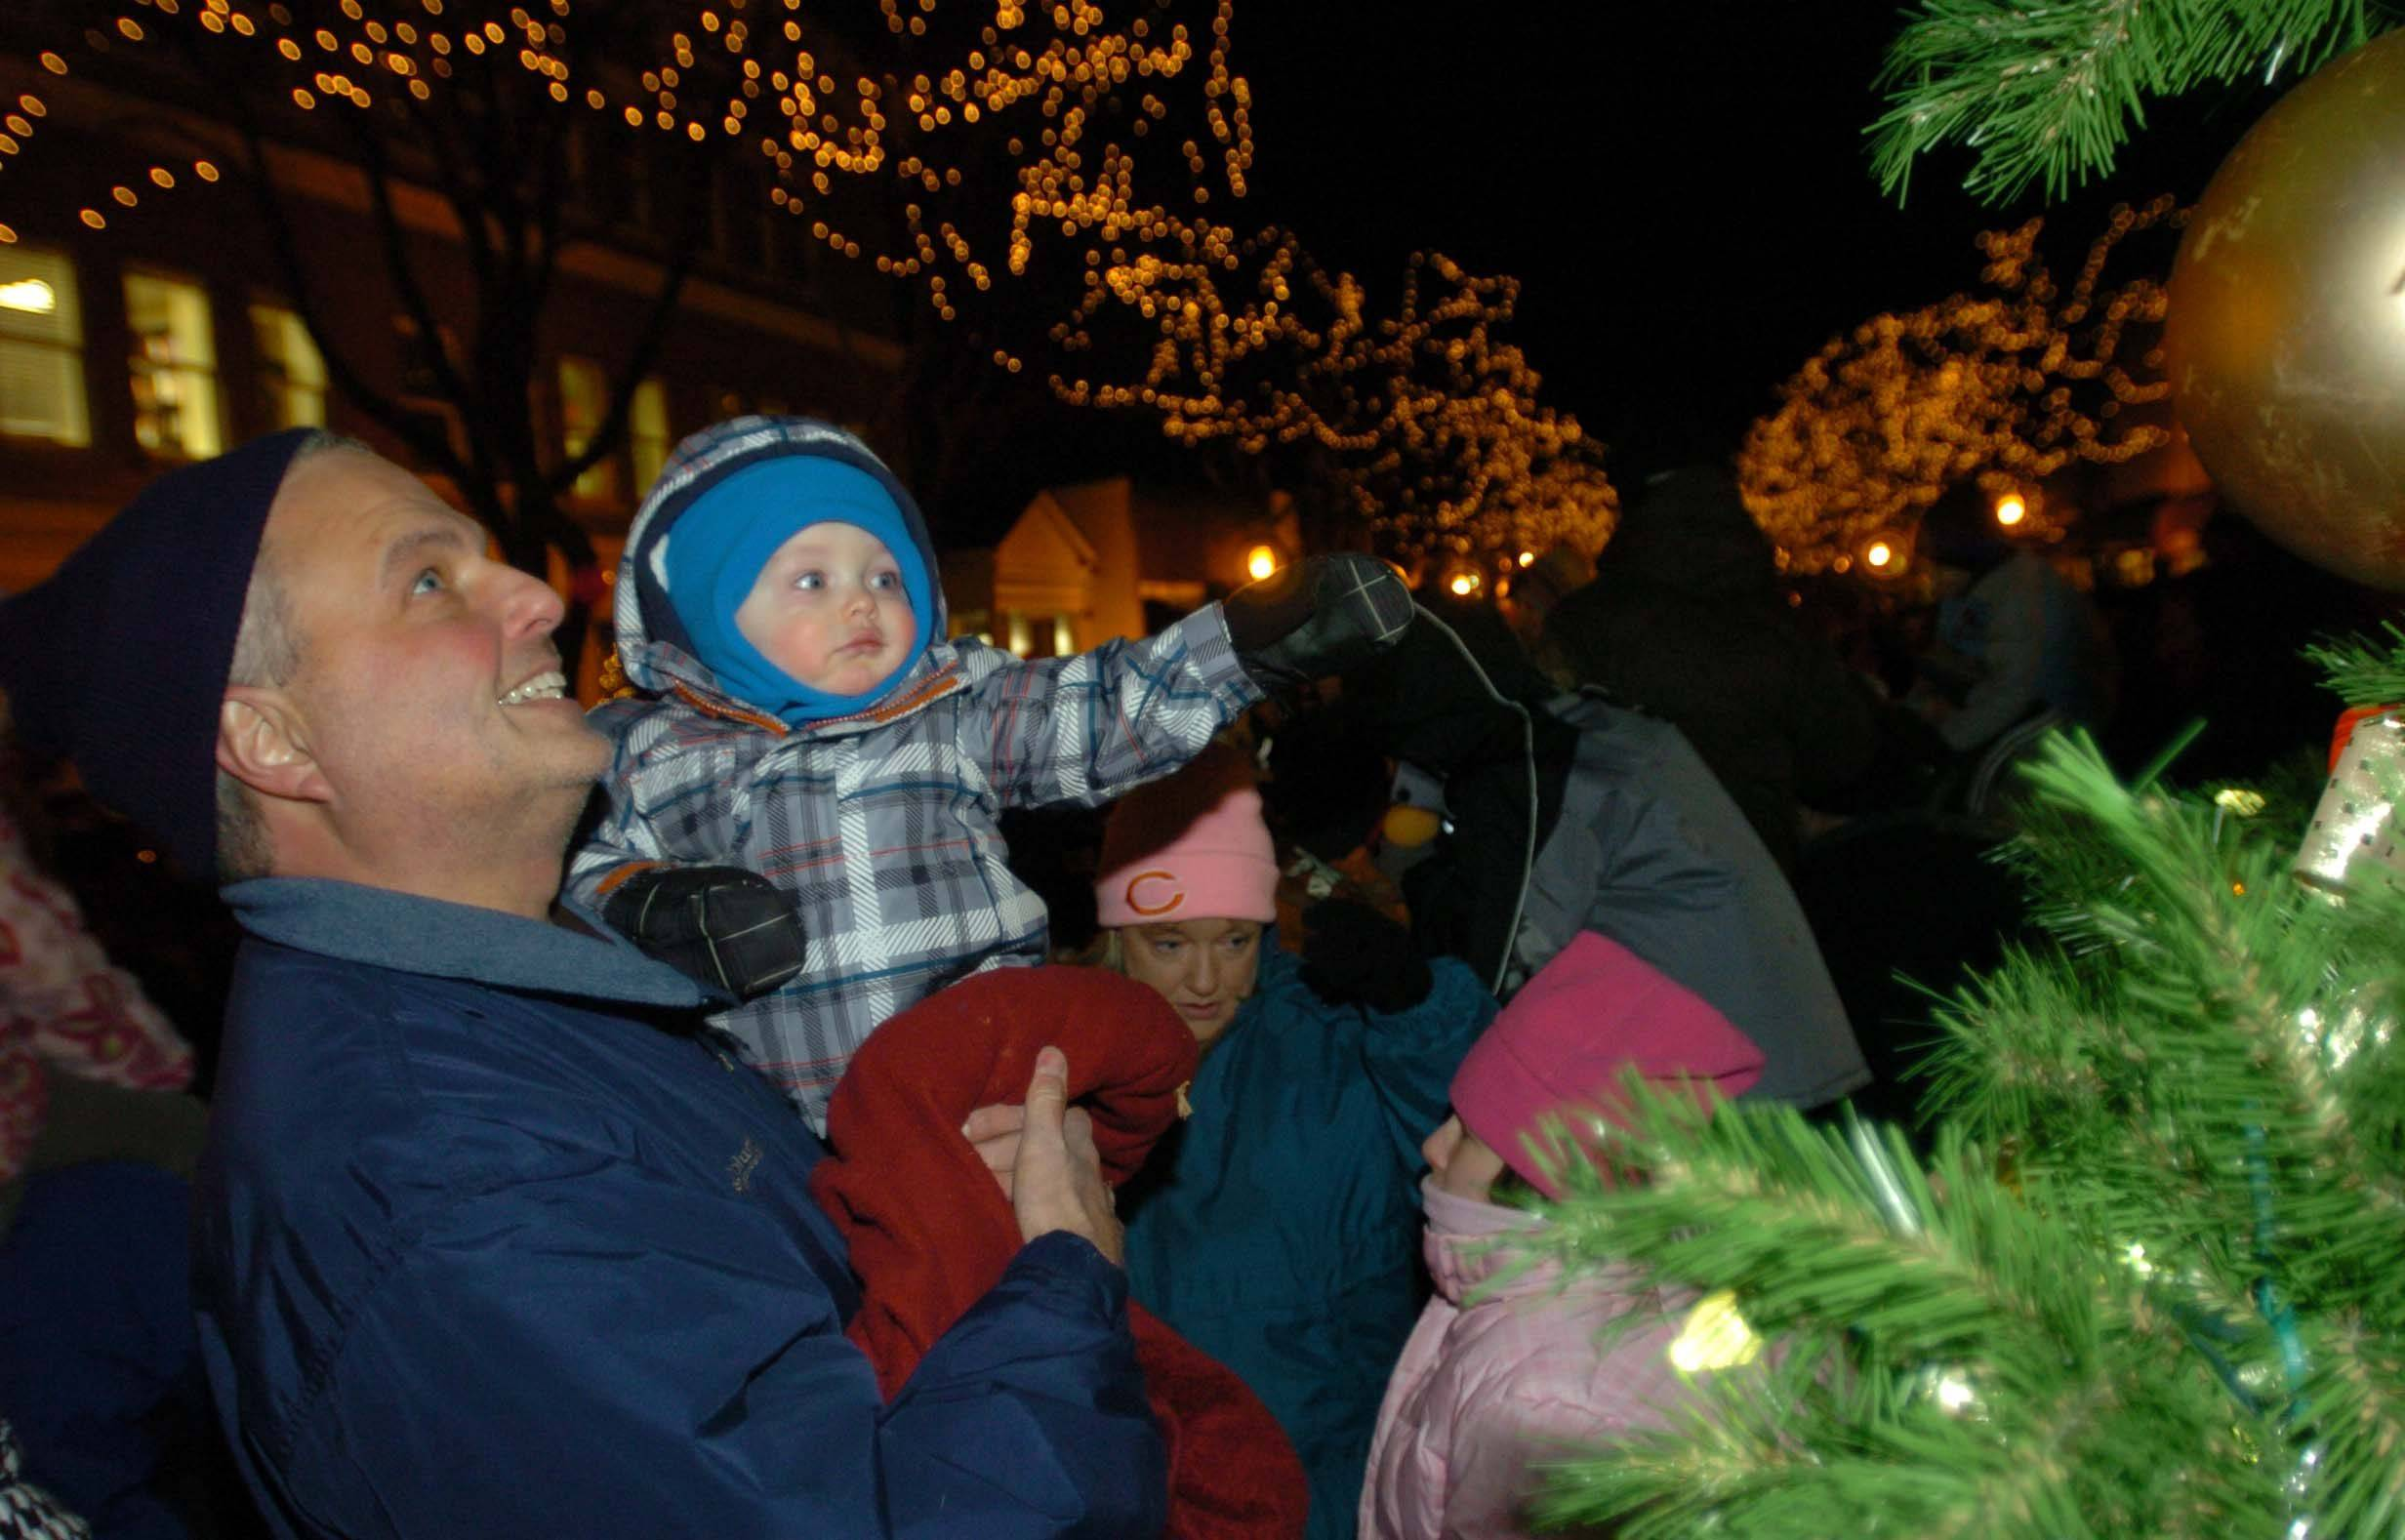 Steve Driza and his Grandson James Lewis, 1, of Glen Ellyn check out the Christmas tree during the Glen Ellyn Tree lighting Friday.